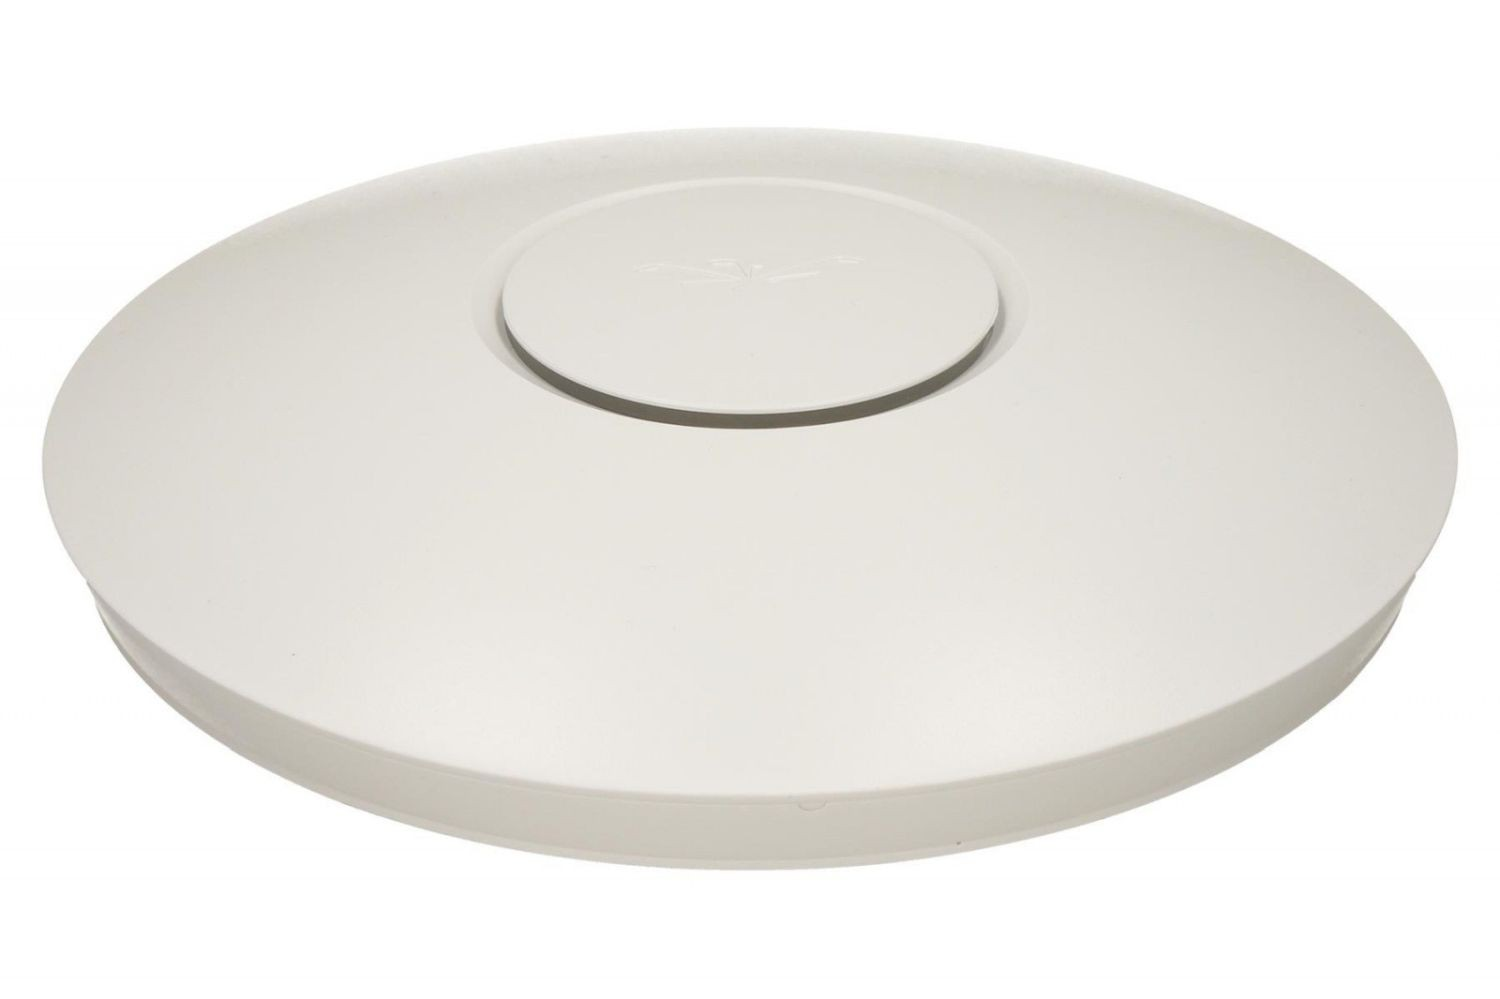 Ubiquiti Networks Ubiquiti UniFi Access Point 2.4 GHz, 802.11b/g/n, 300 Mbps, 20 dBm, 3 Pack